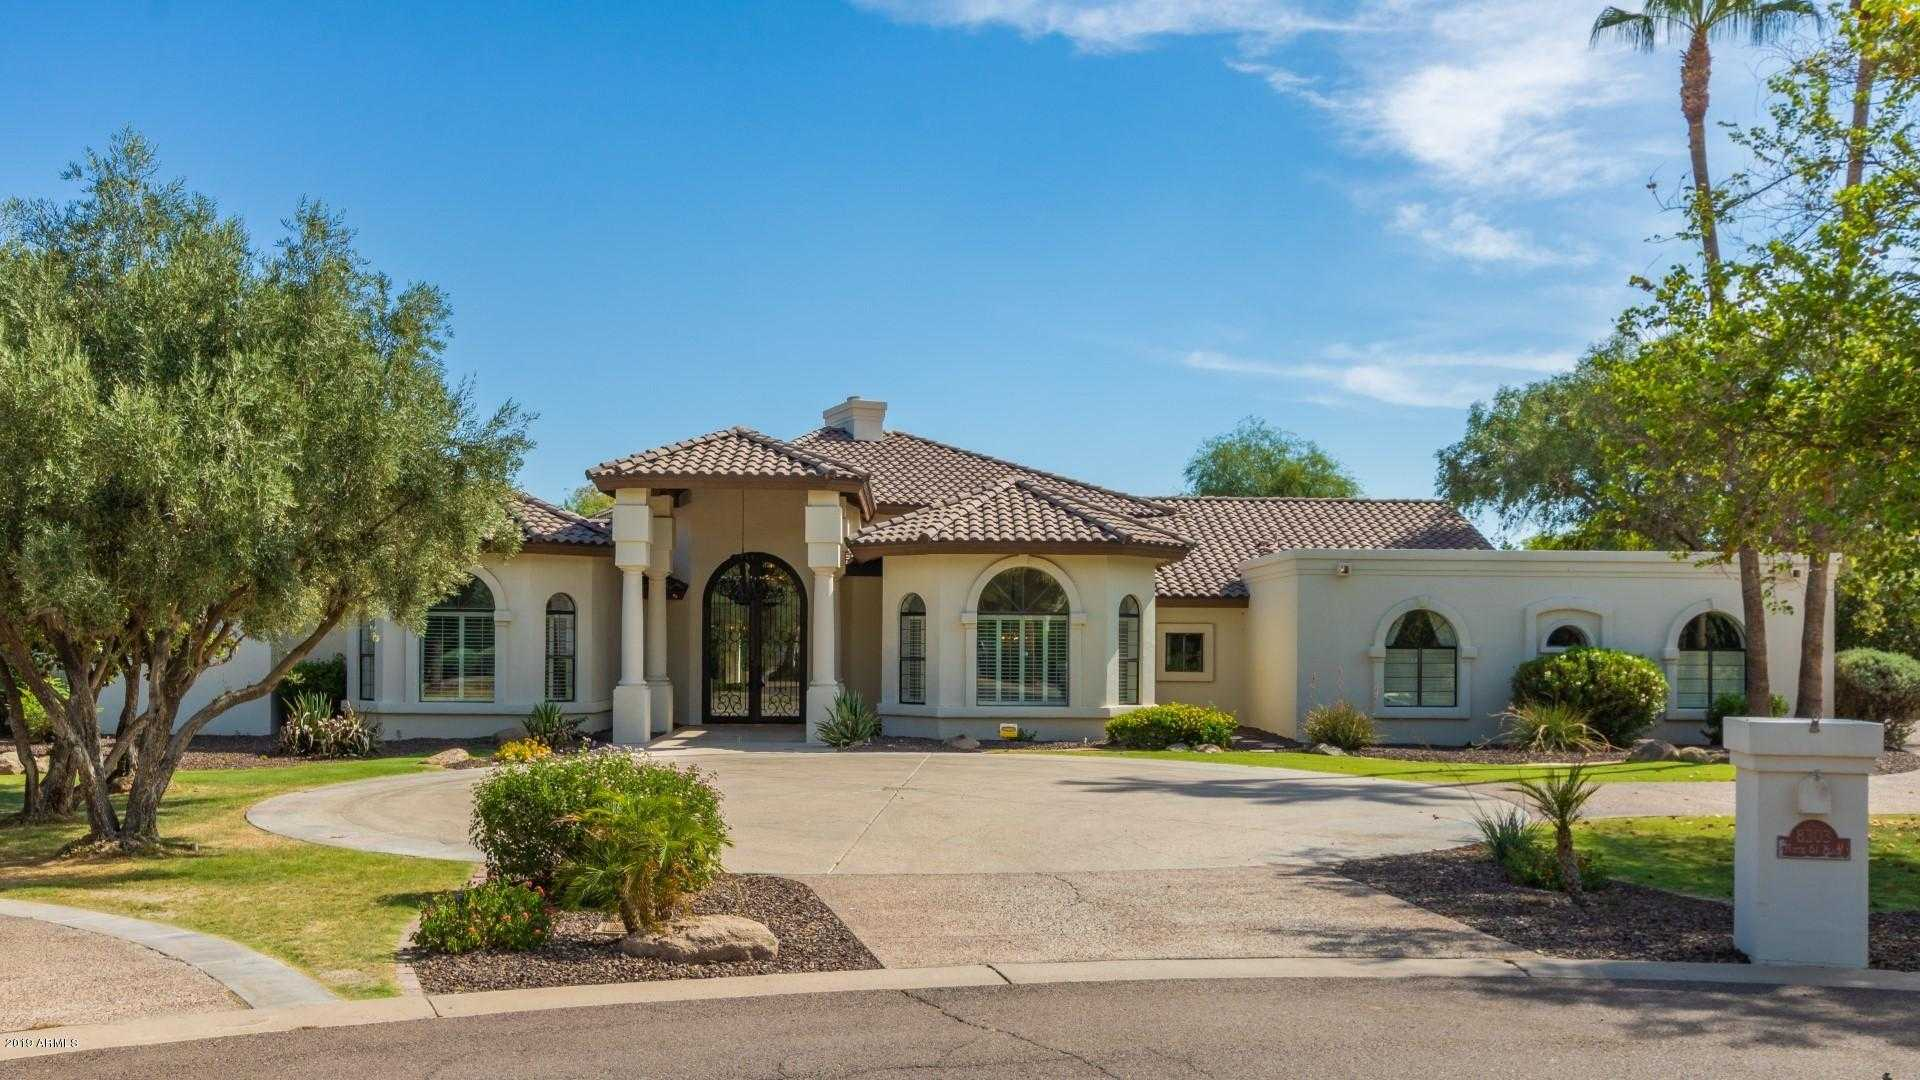 $2,300,000 - 5Br/7Ba - Home for Sale in Rodeo Estates Lot 1-5, Paradise Valley